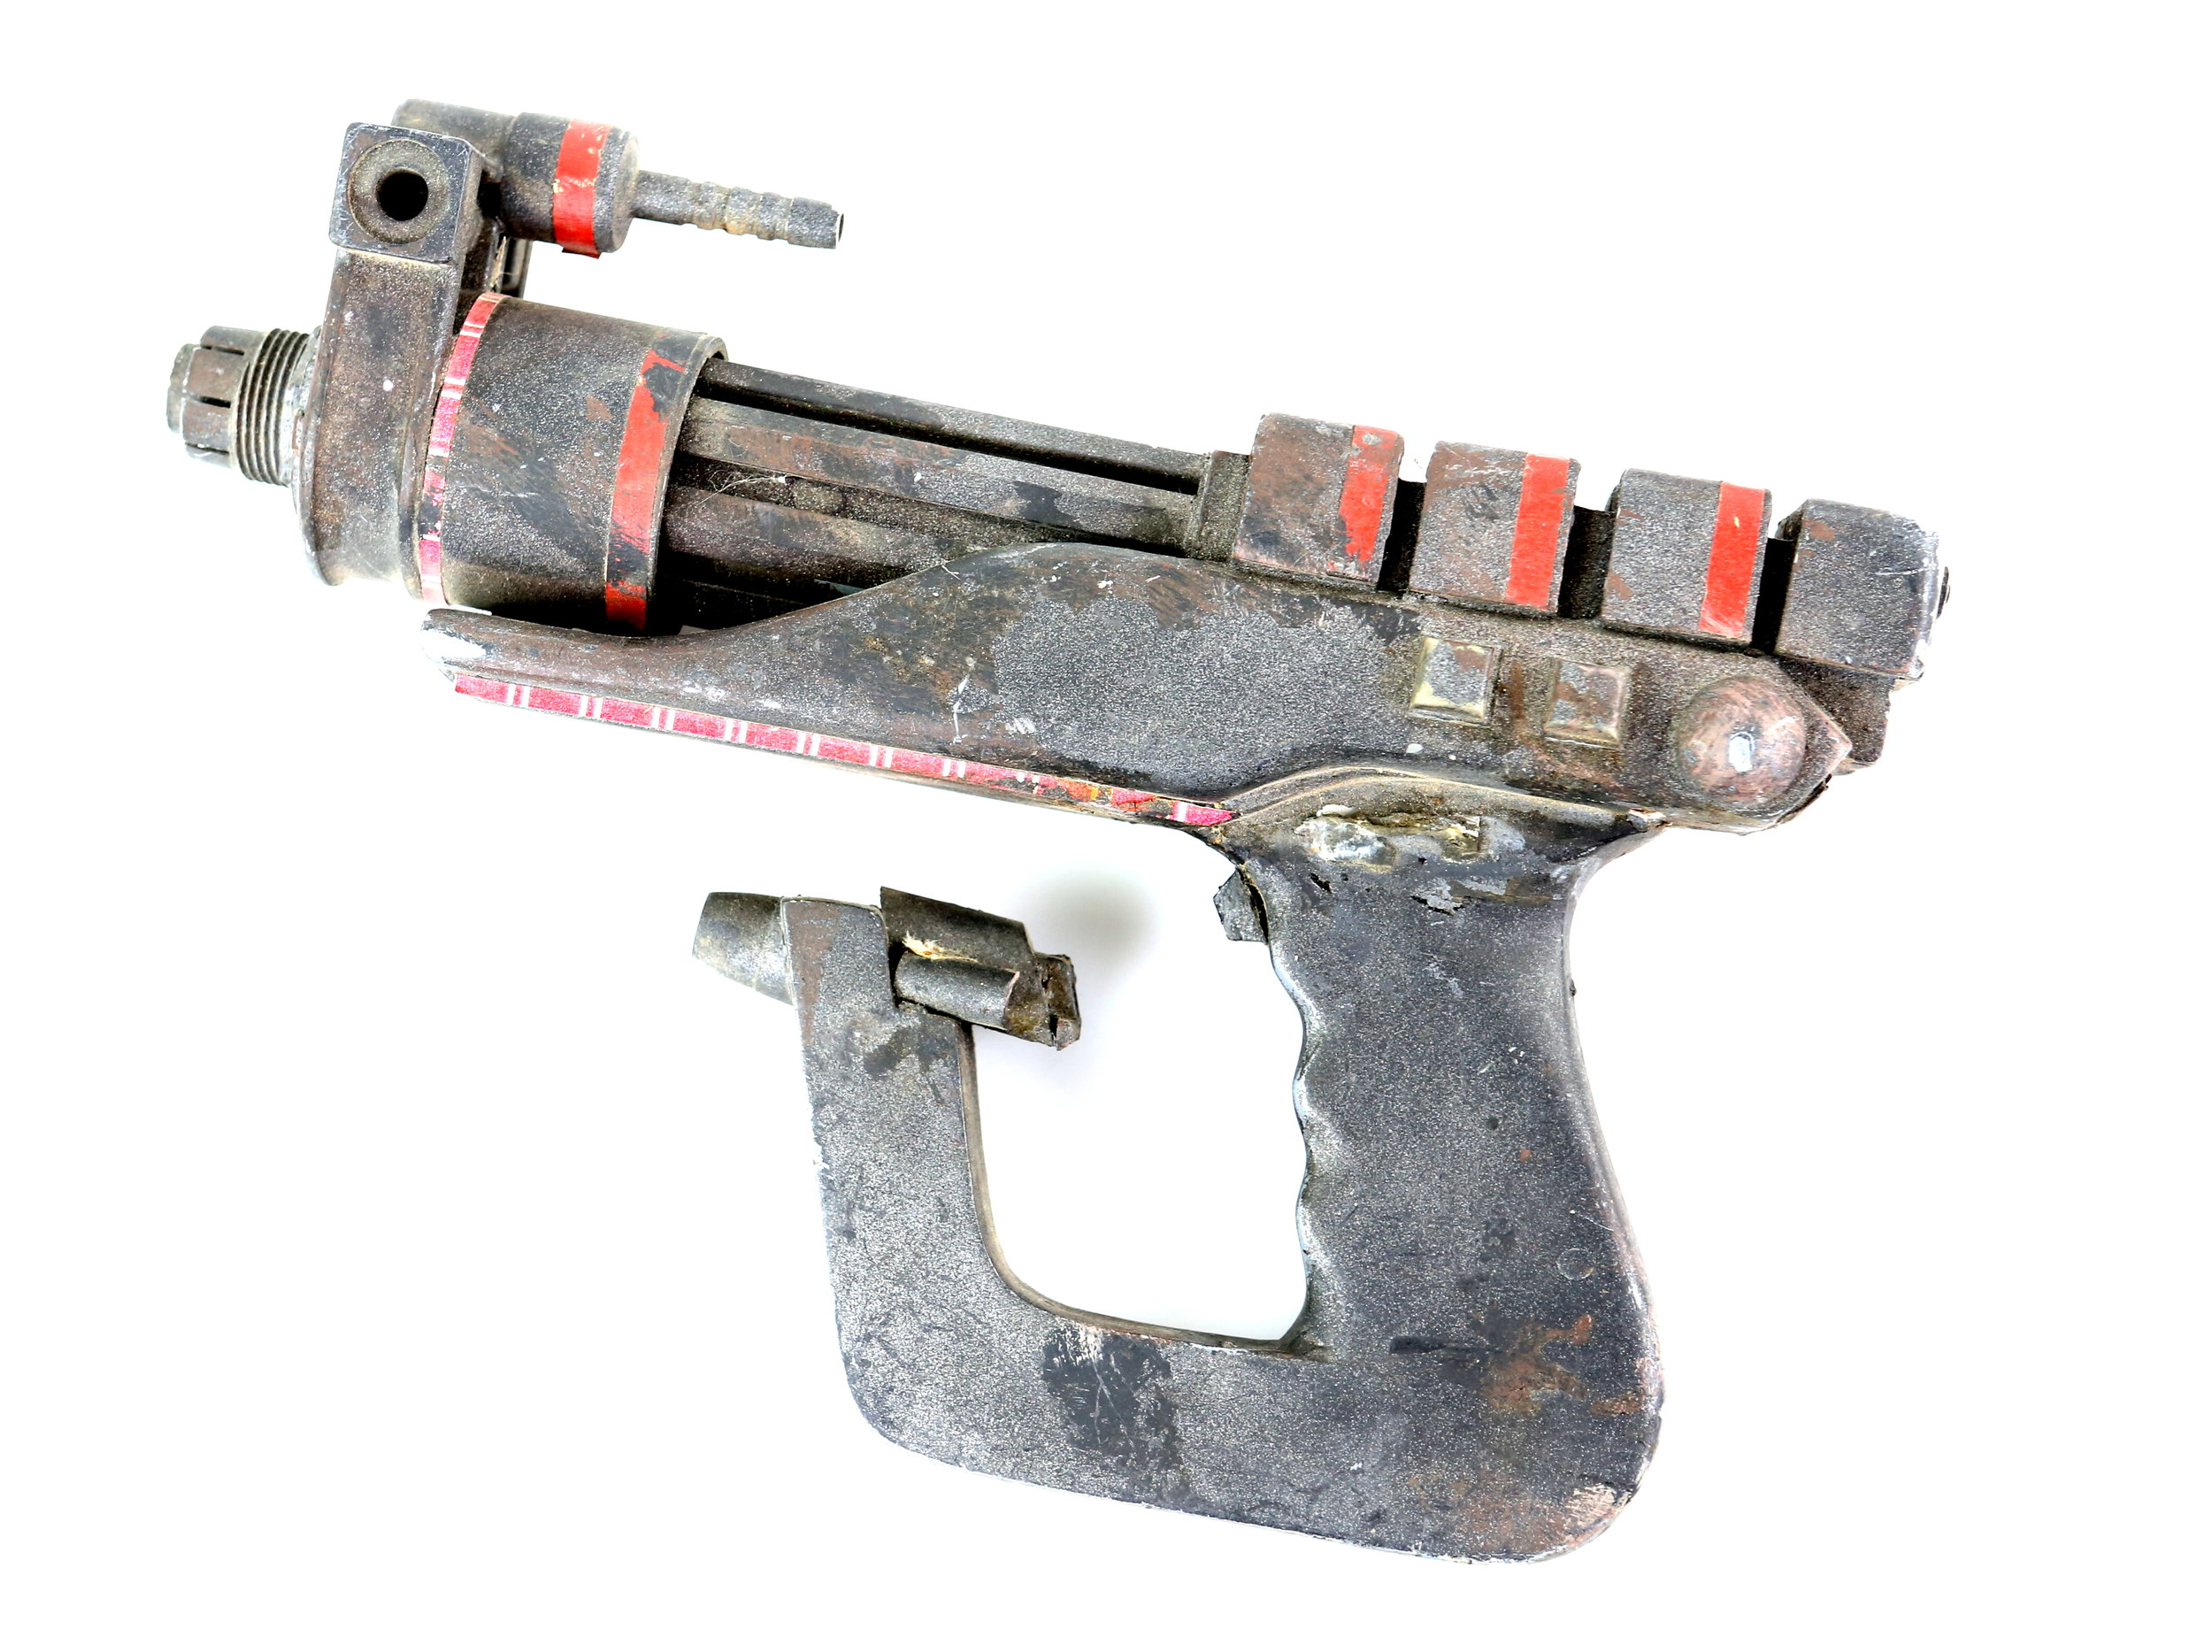 Dr Who and Red Dwarf blaster – estimate £200-400